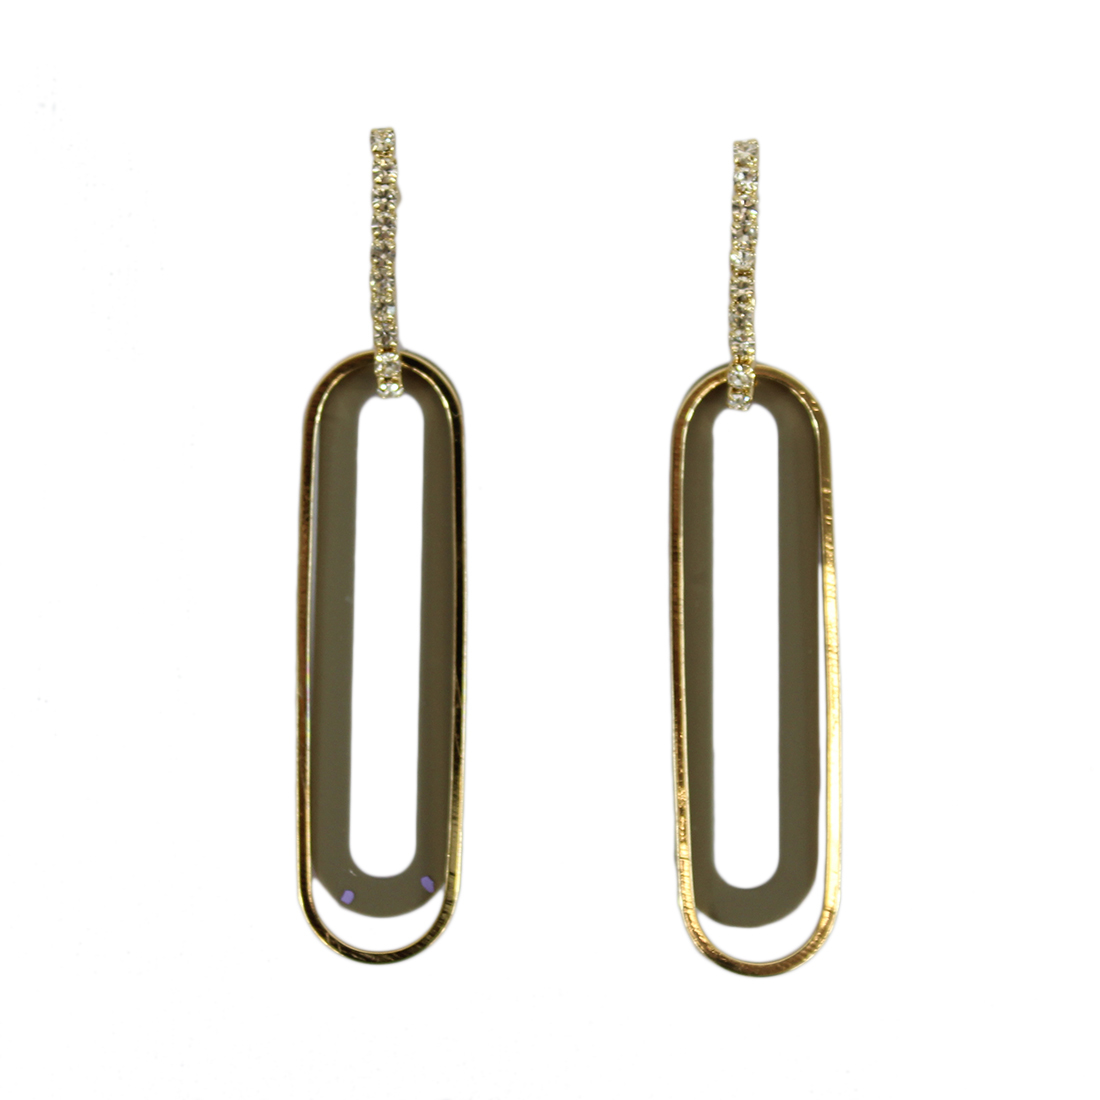 Oval earrings with diamond on top